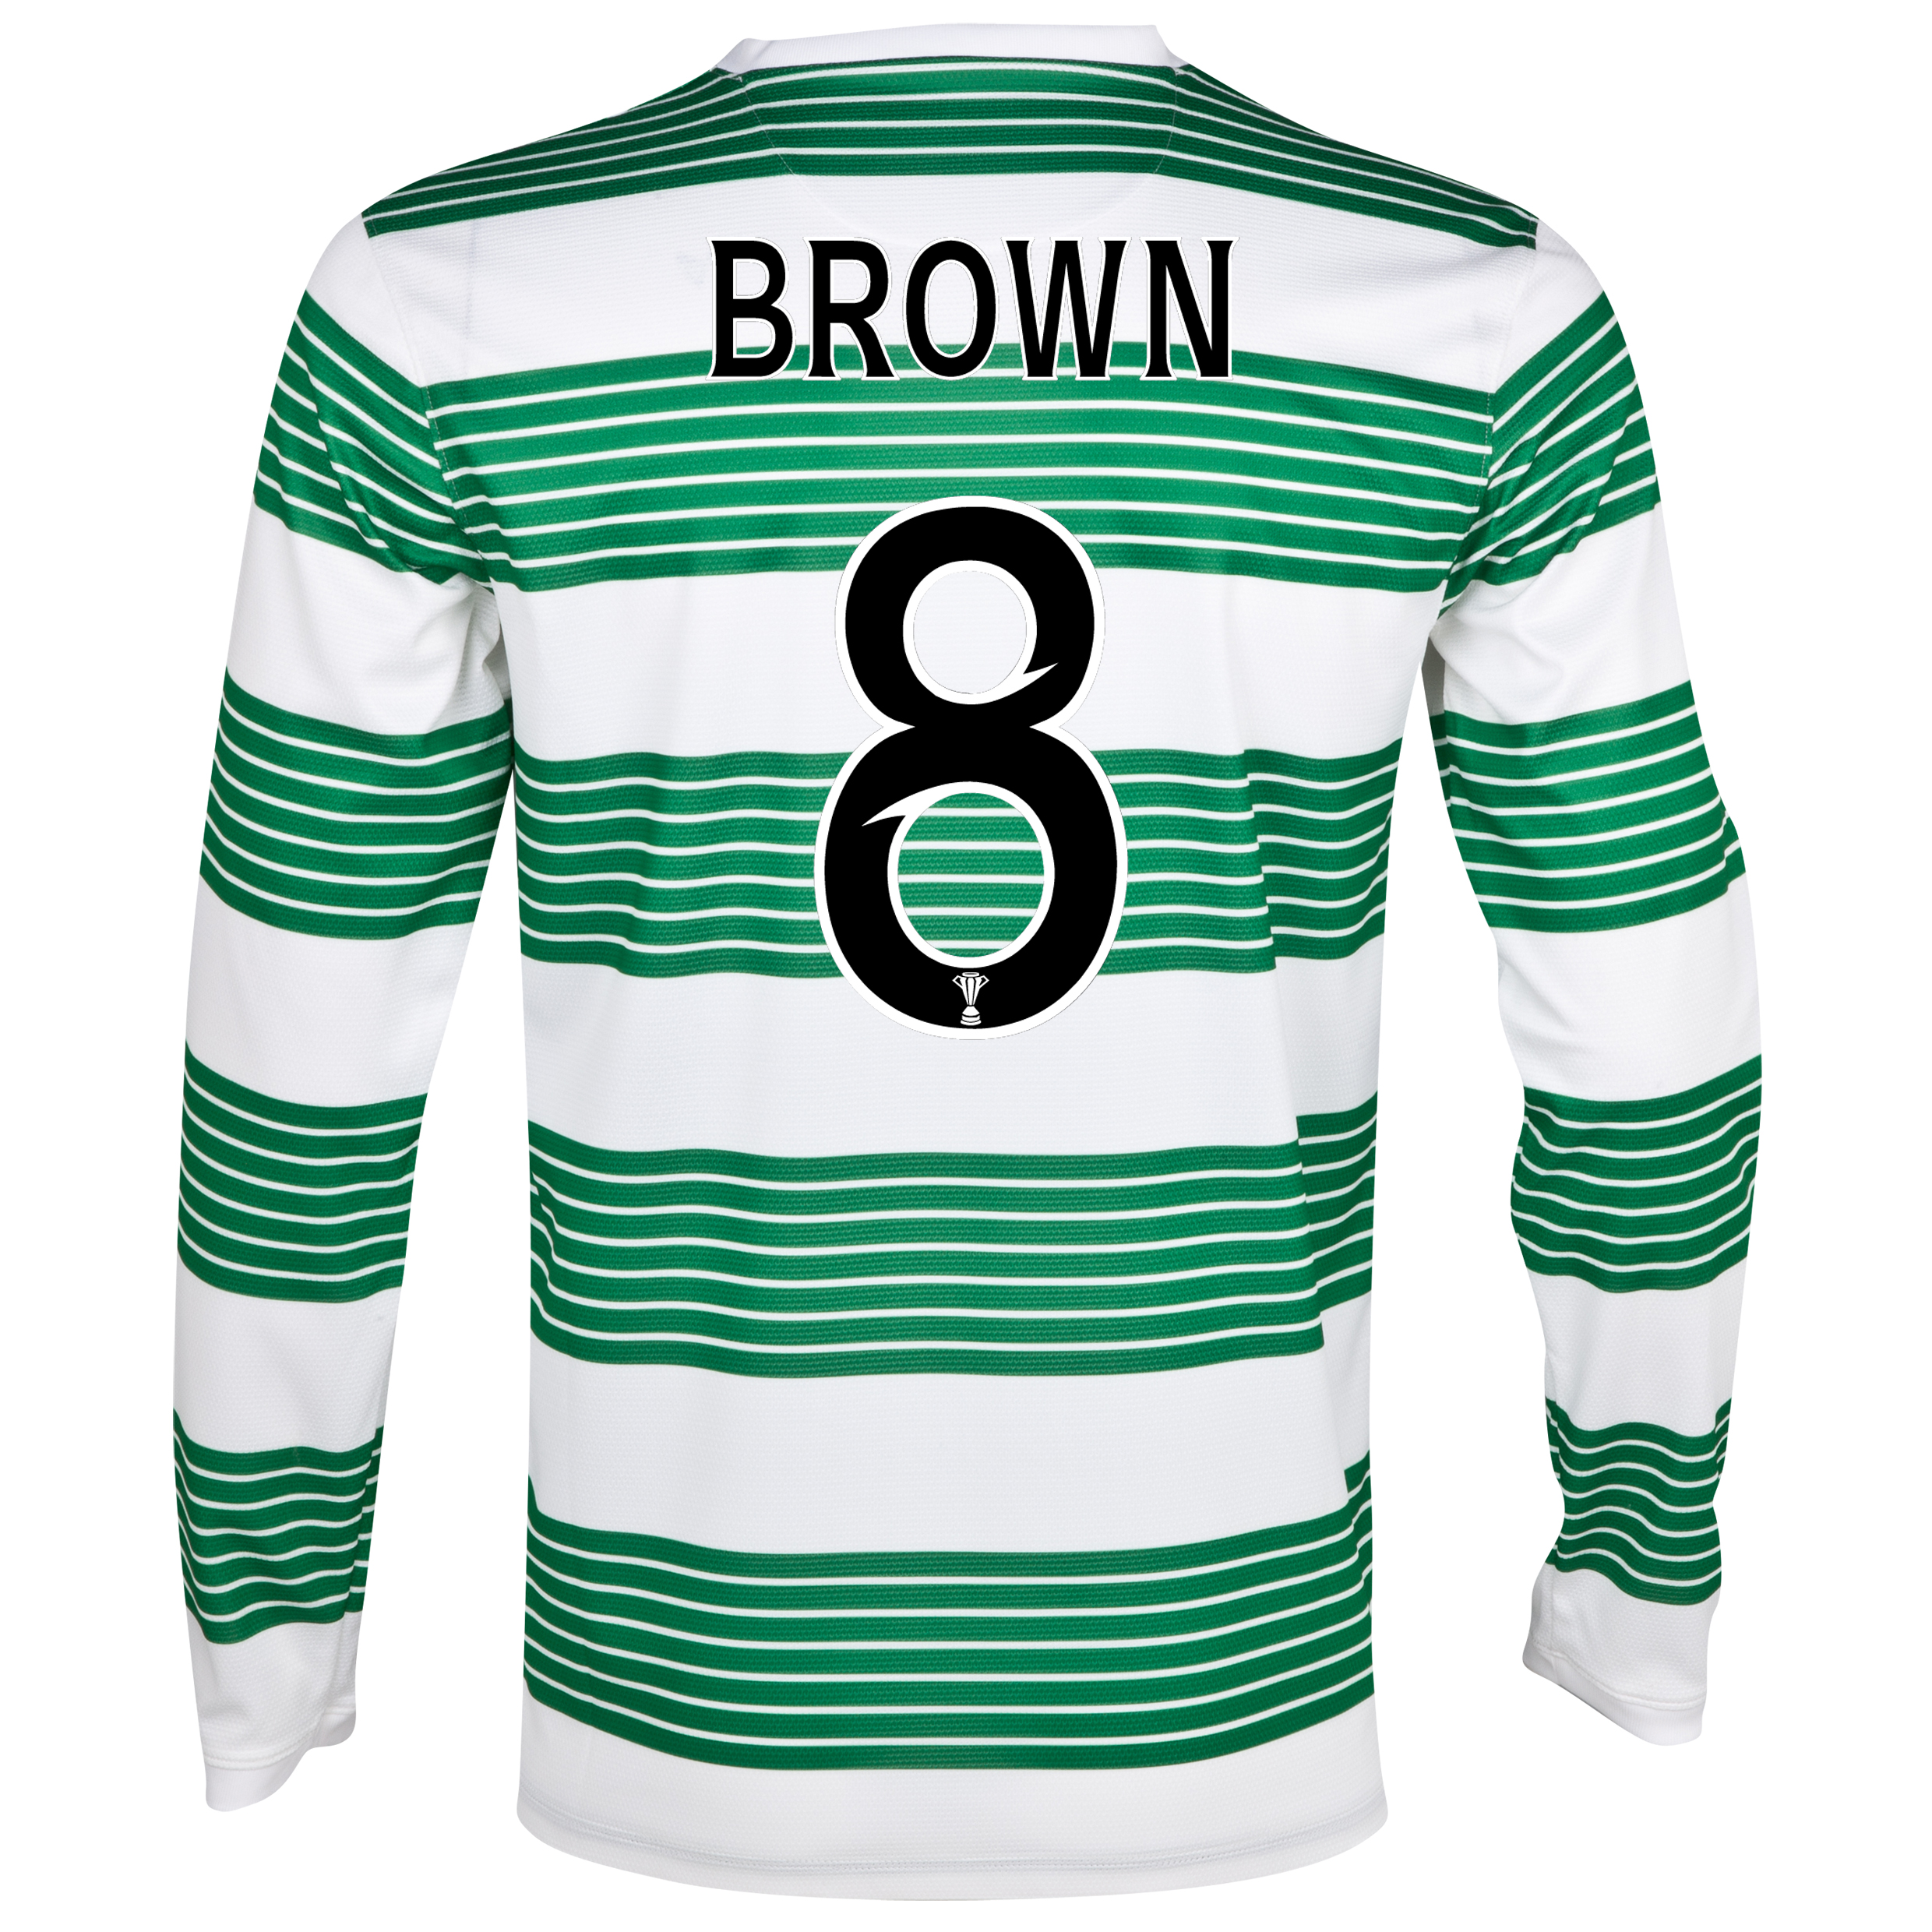 Celtic Home Shirt 2013/14 - L/S- Unsponsored with Brown 8 printing